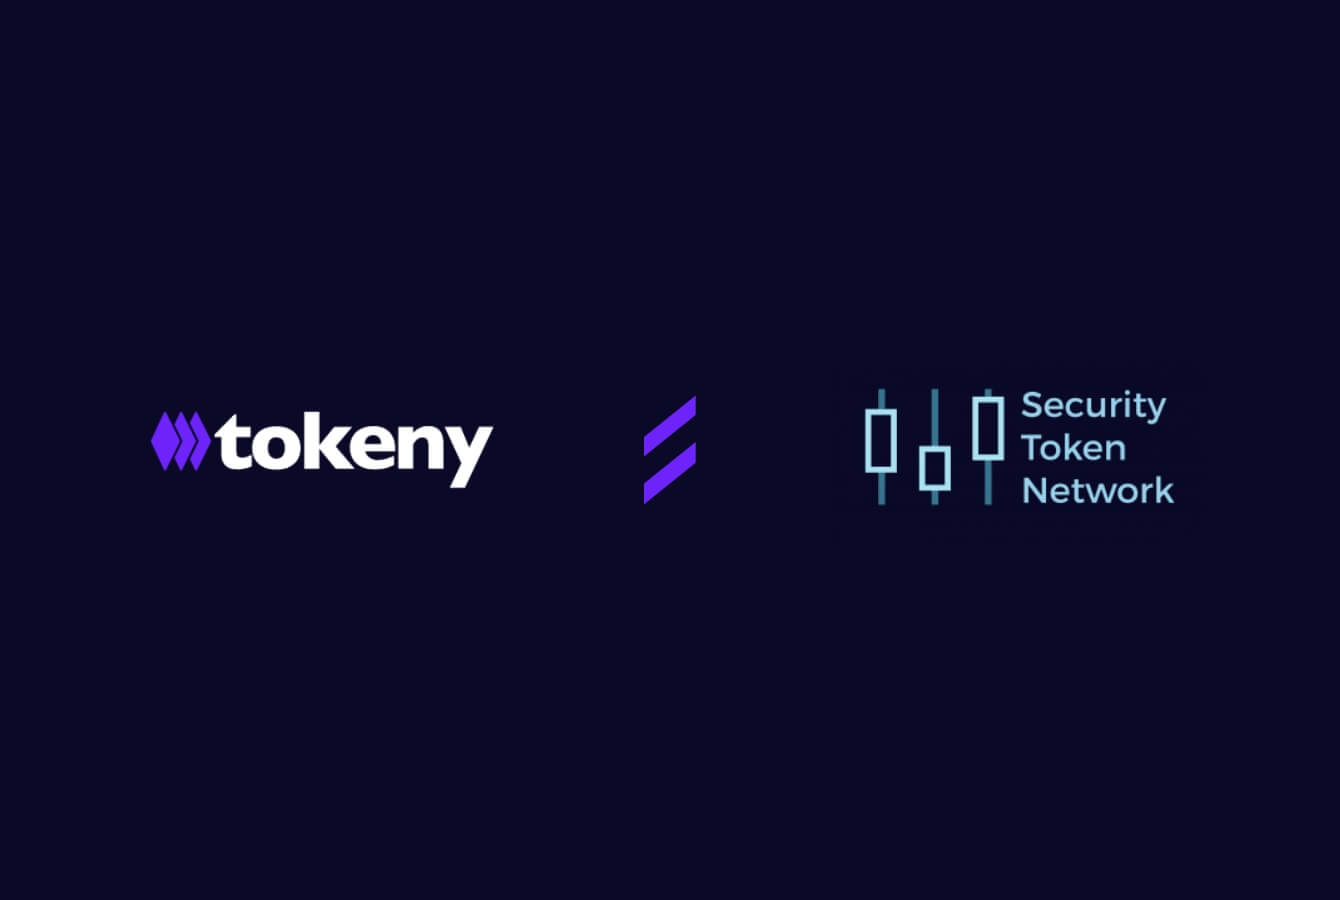 Tokeny and Security Token Network Form Strategic Partnership To Deliver Security Token Offerings